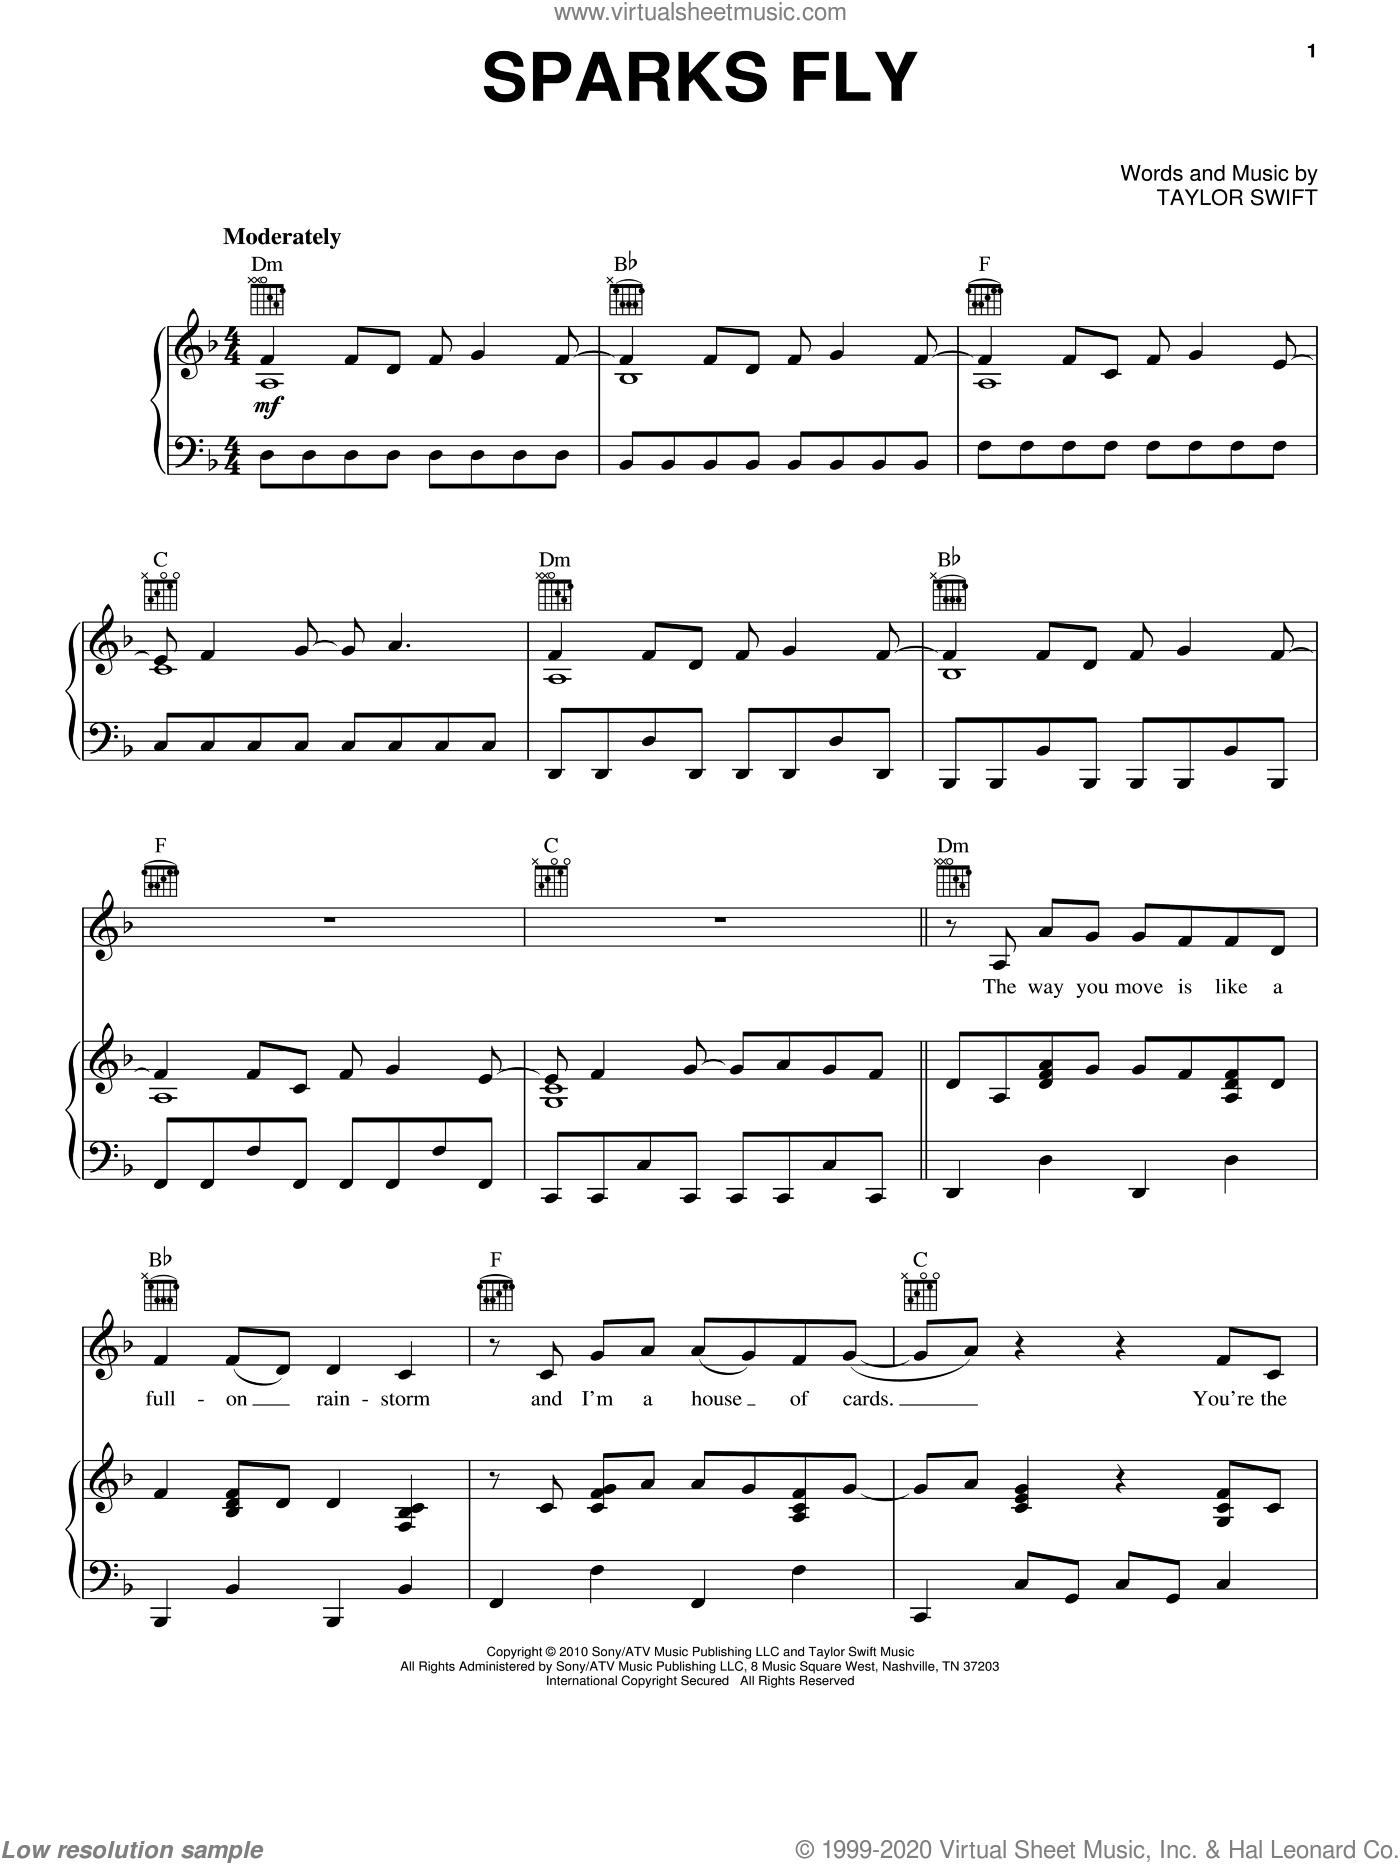 Sparks Fly sheet music for voice, piano or guitar by Taylor Swift. Score Image Preview.